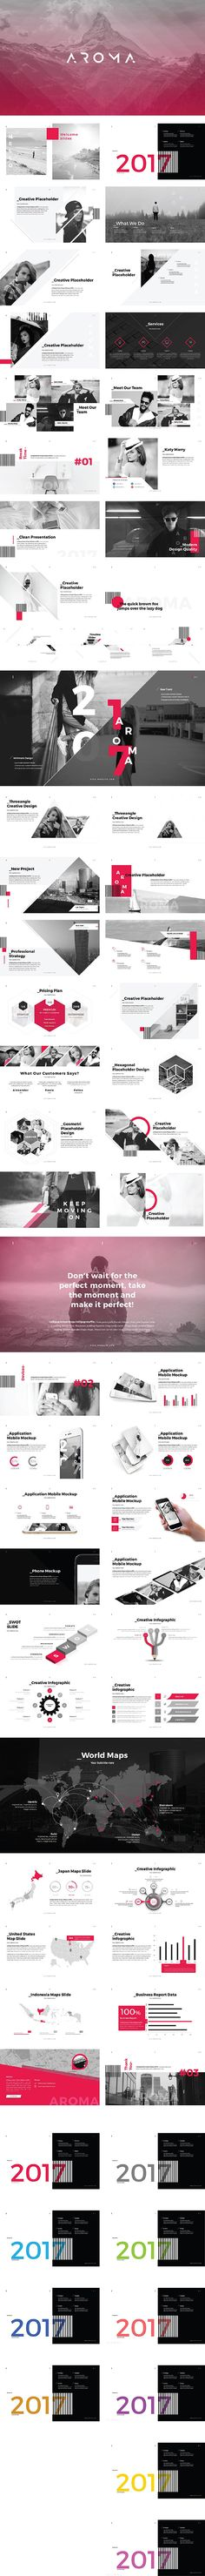 AROMA - Modern Business PowerPoint Template